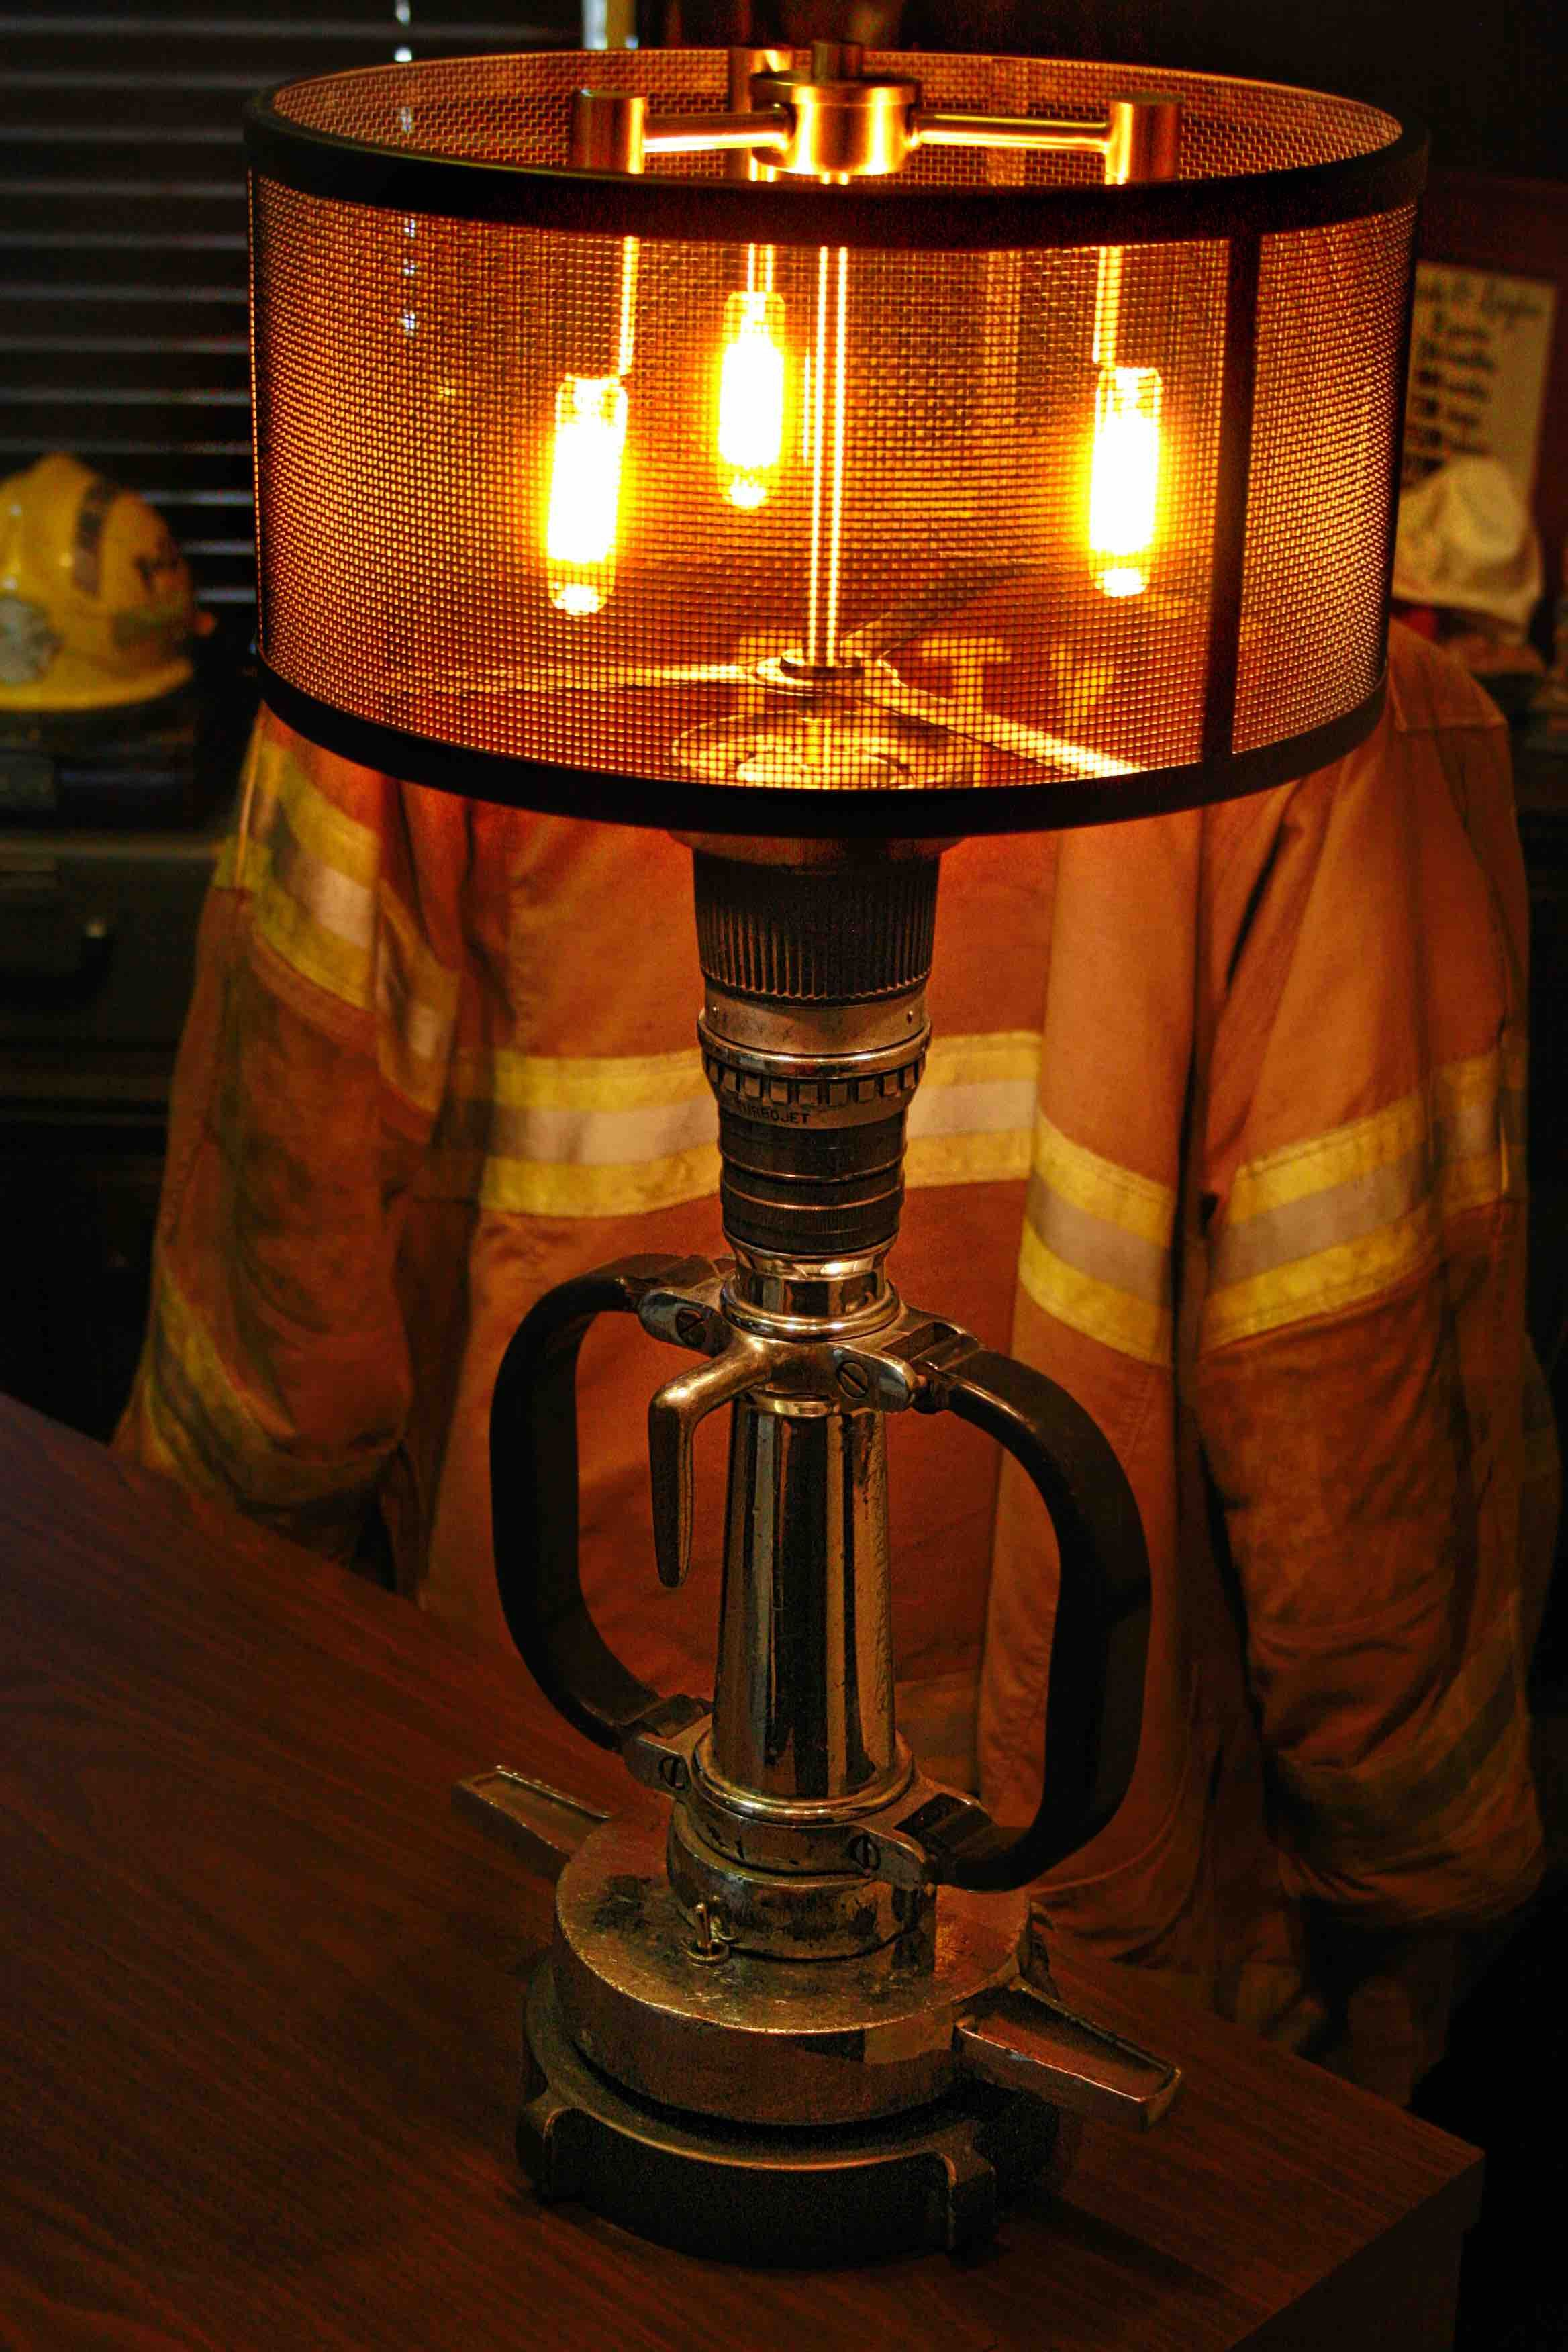 Fire Fighter Decor Diy Lamp Fire Fighter Nozzle Converted To A Lamp Steampunk Lighting Firefighter Decor Fire Truck Room